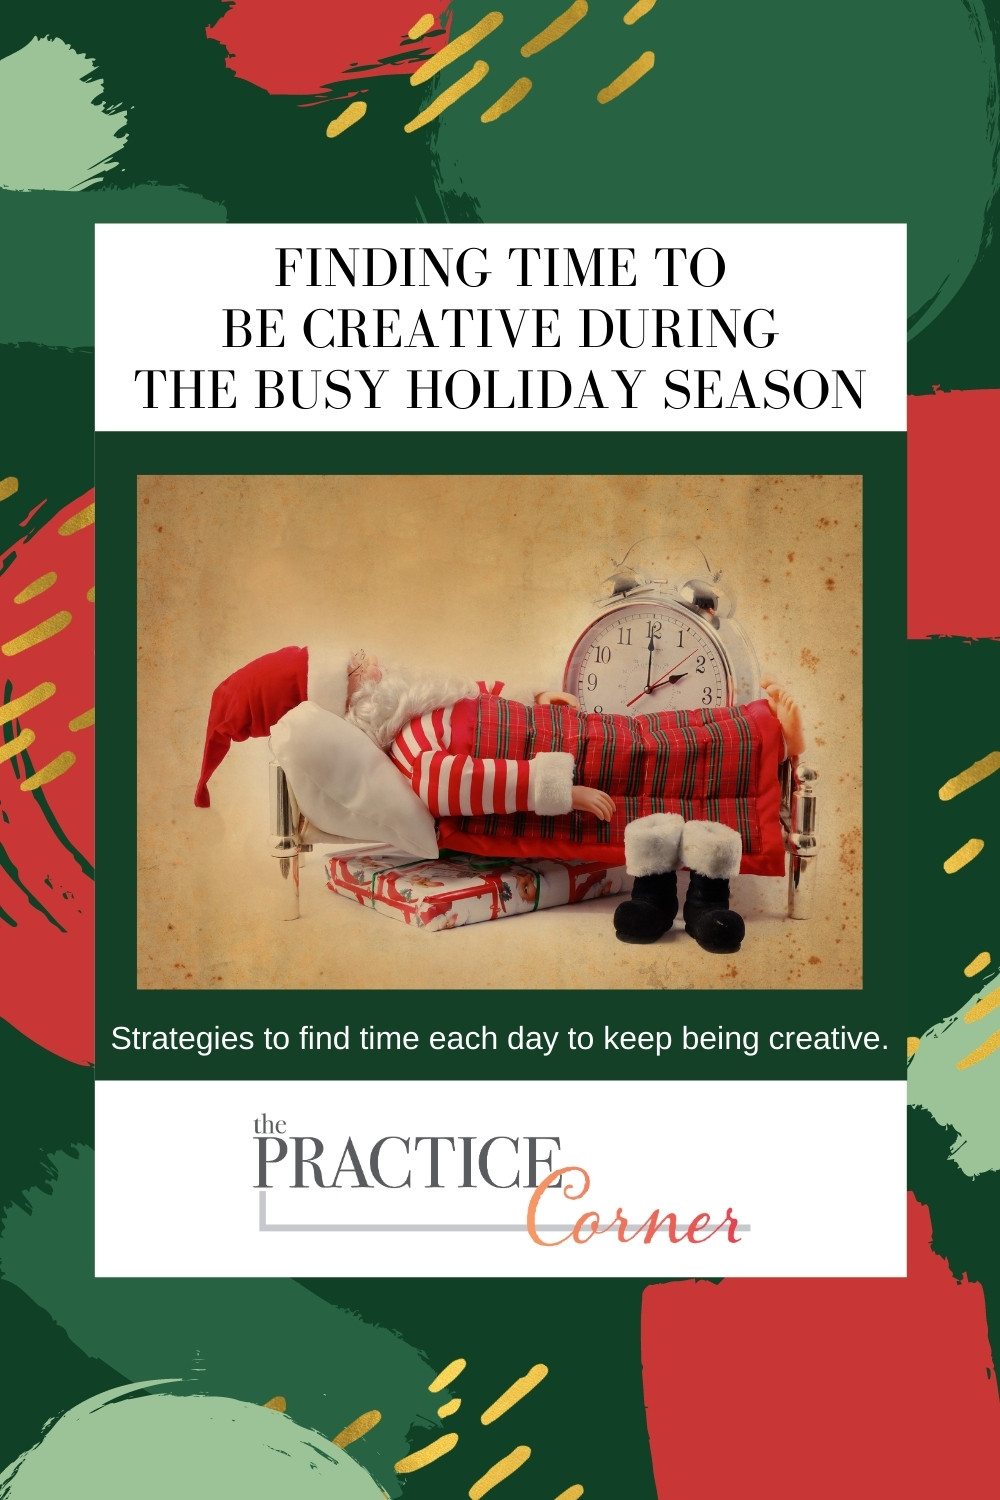 Strategies to find creative time during the busy holiday season. | The Practice Corner | How to find time to be creative during the holidays. | #watercolorpractice #coloredpencilpractice